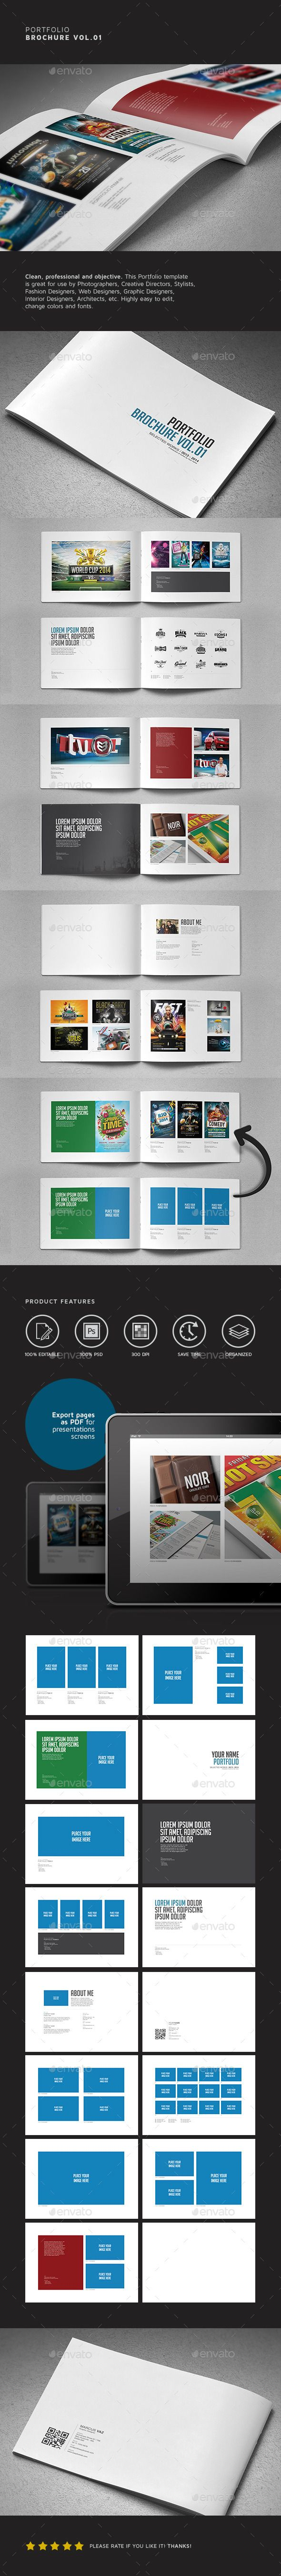 Portfolio Brochure Vol.01  #lines #logo #minimal • Available here → http://graphicriver.net/item/portfolio-brochure-vol01/7103852?s_rank=128&ref=pxcr